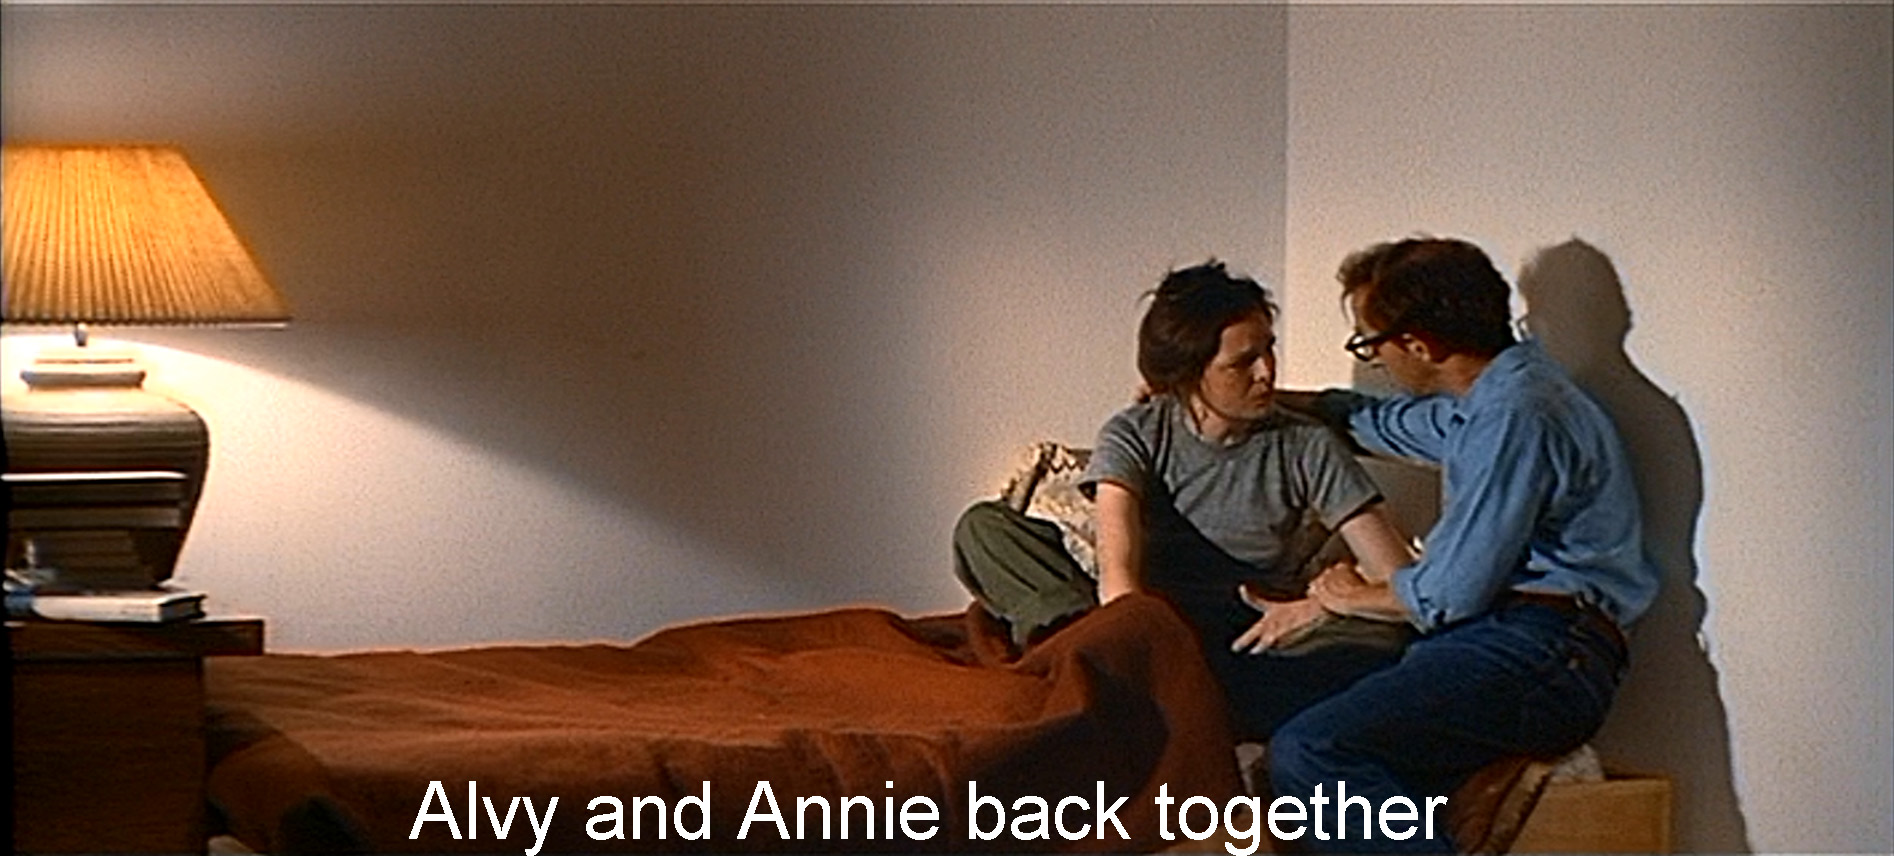 Alvy and Annie back together